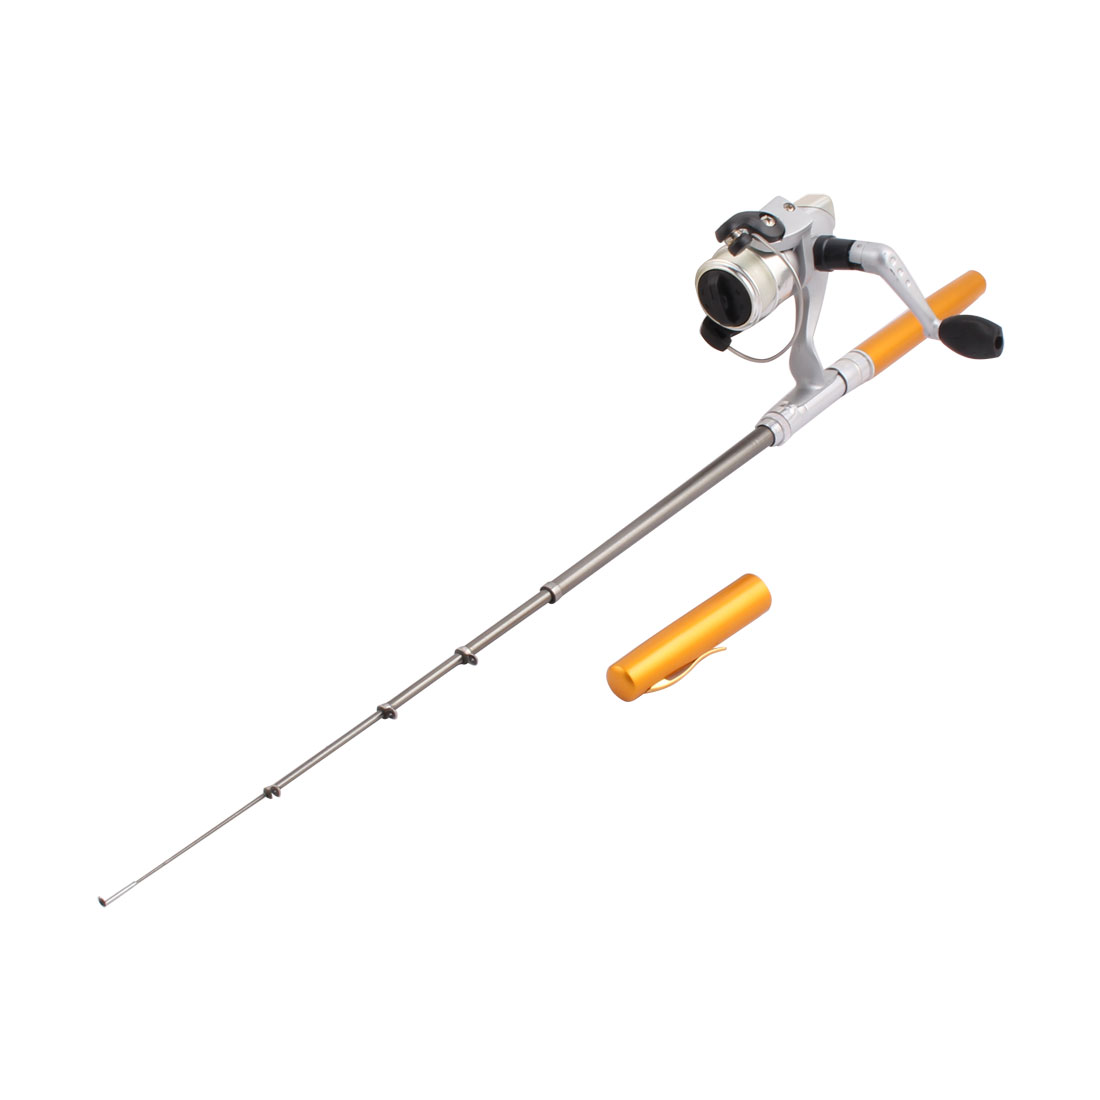 Gold Tone Line Guides Telescopic Pen Fishing Rod + Spinning Line Reel